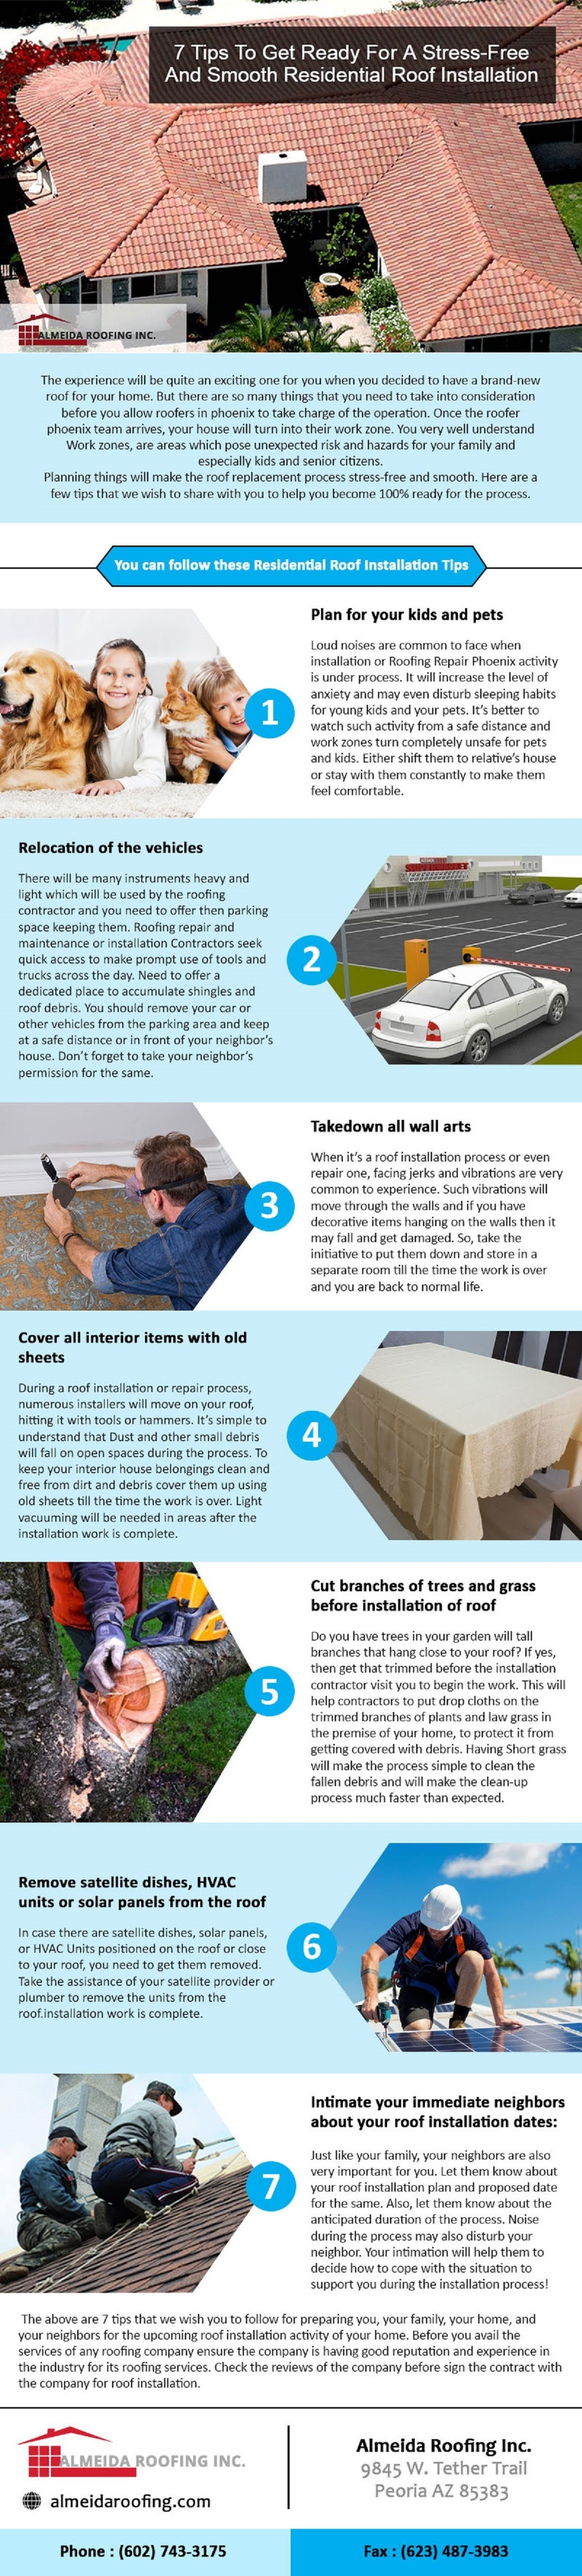 7 Tips To Get Ready For A Stress Free Roof Installation #infographic